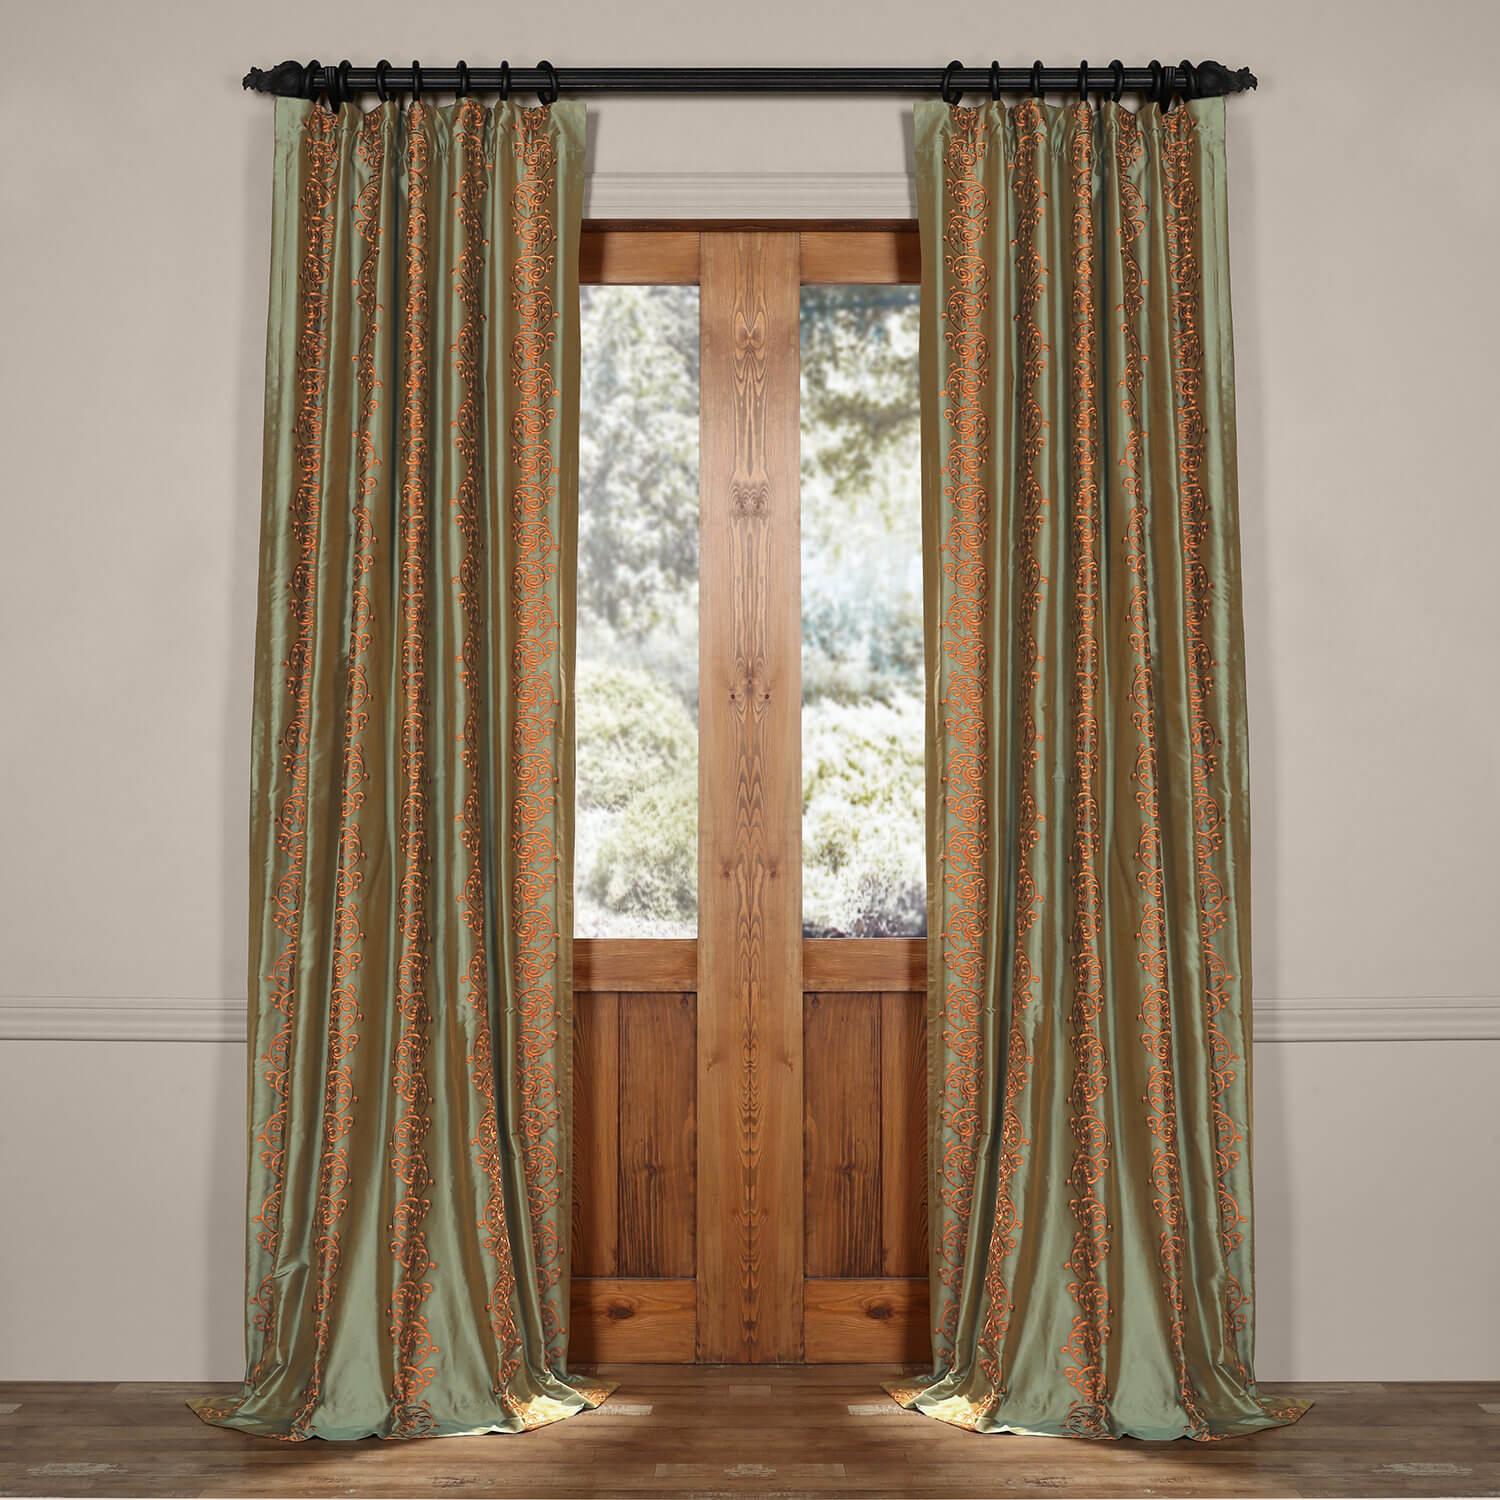 Bespoke silk curtains